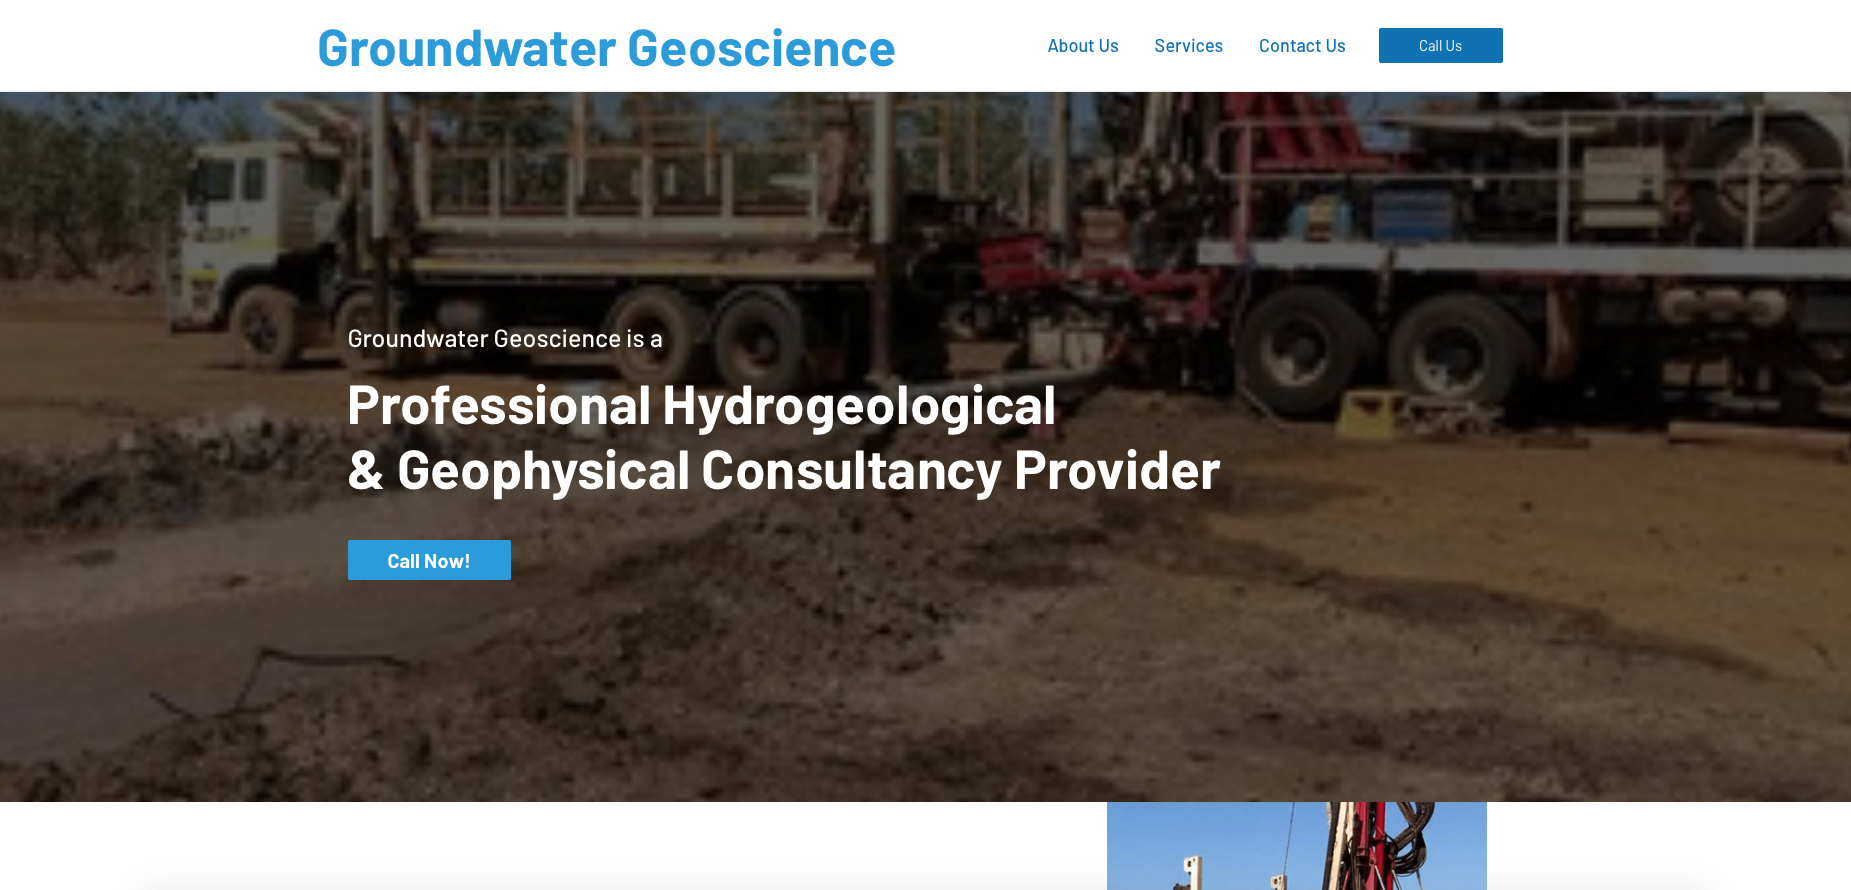 Our sample work - Groundwater Geoscience